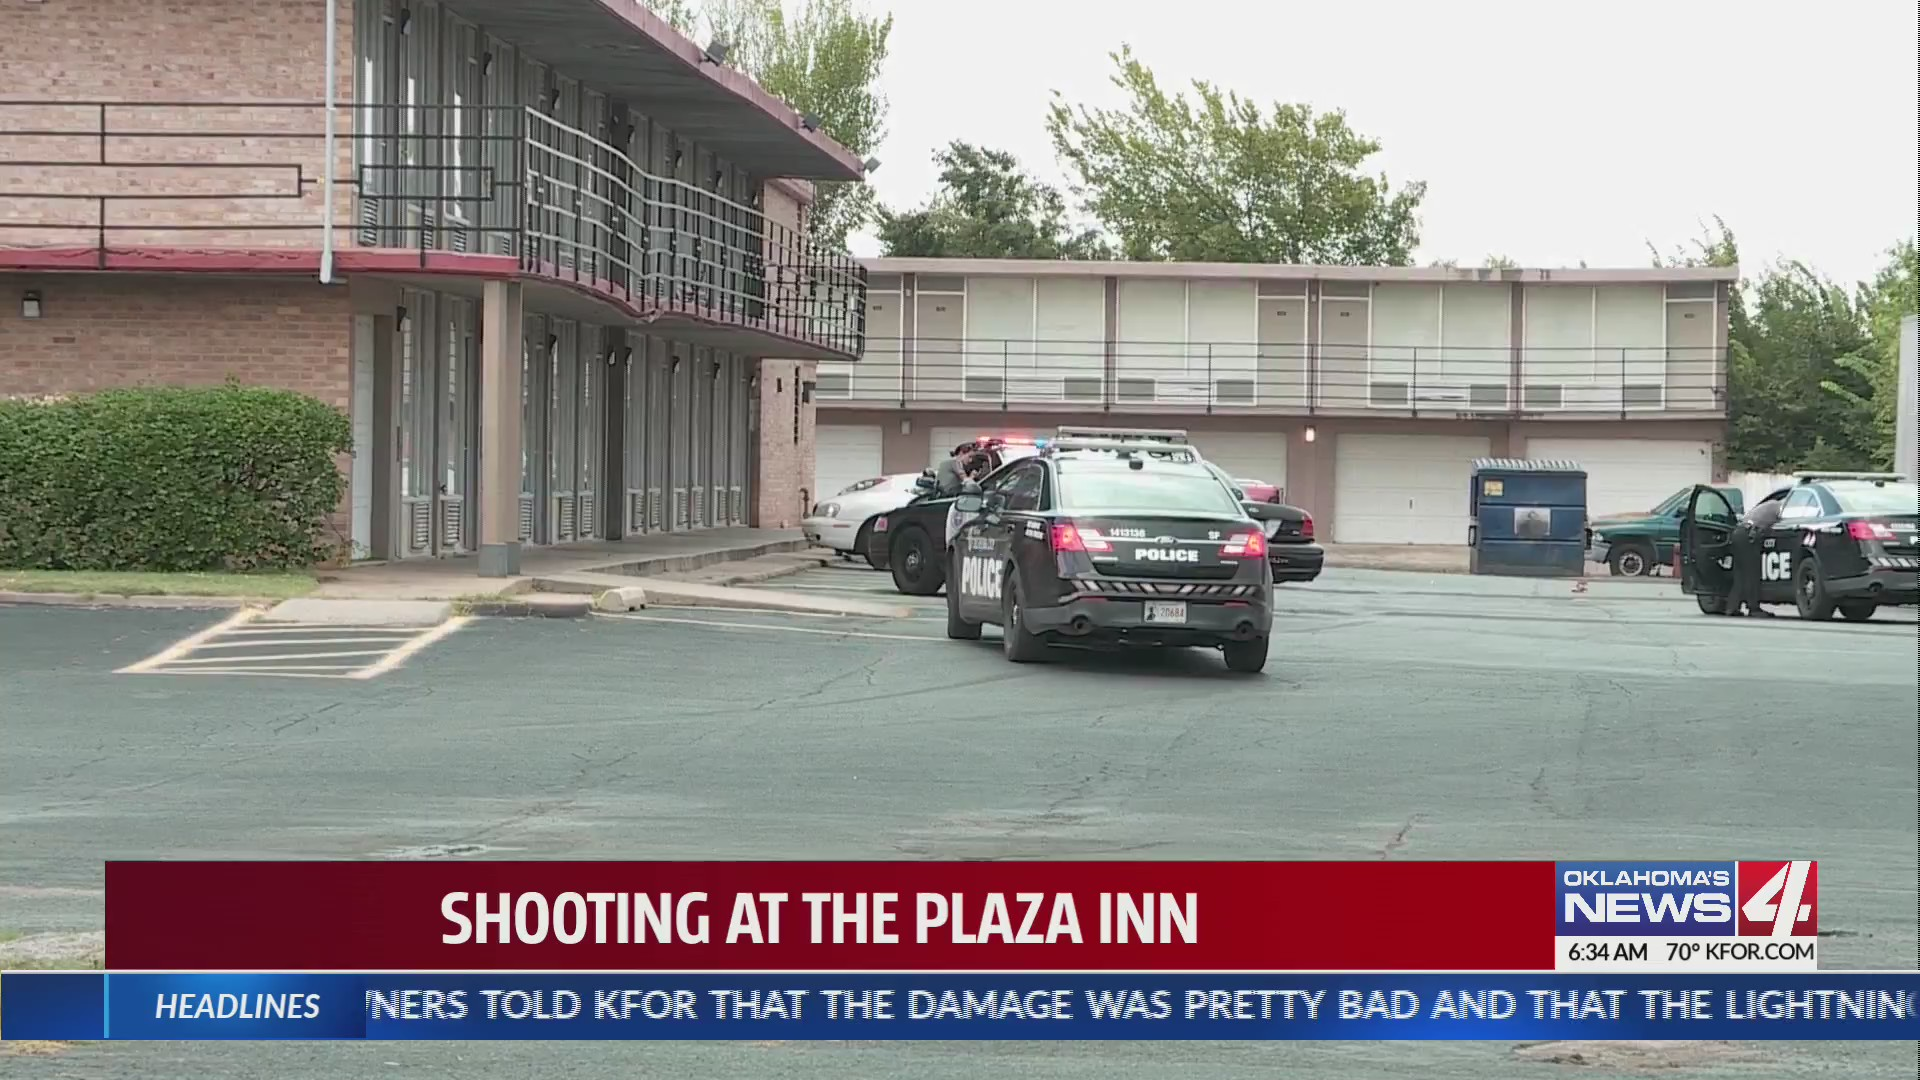 Shooting at Plaza Inn